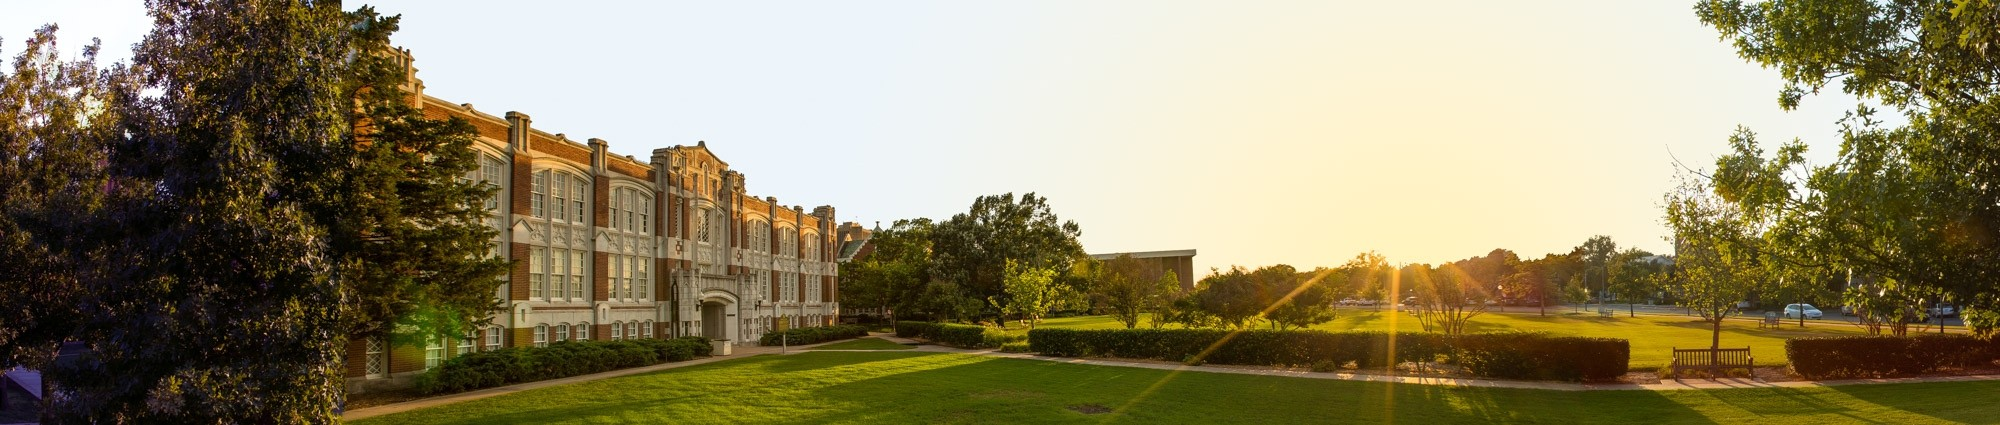 OU Campus panoramic view